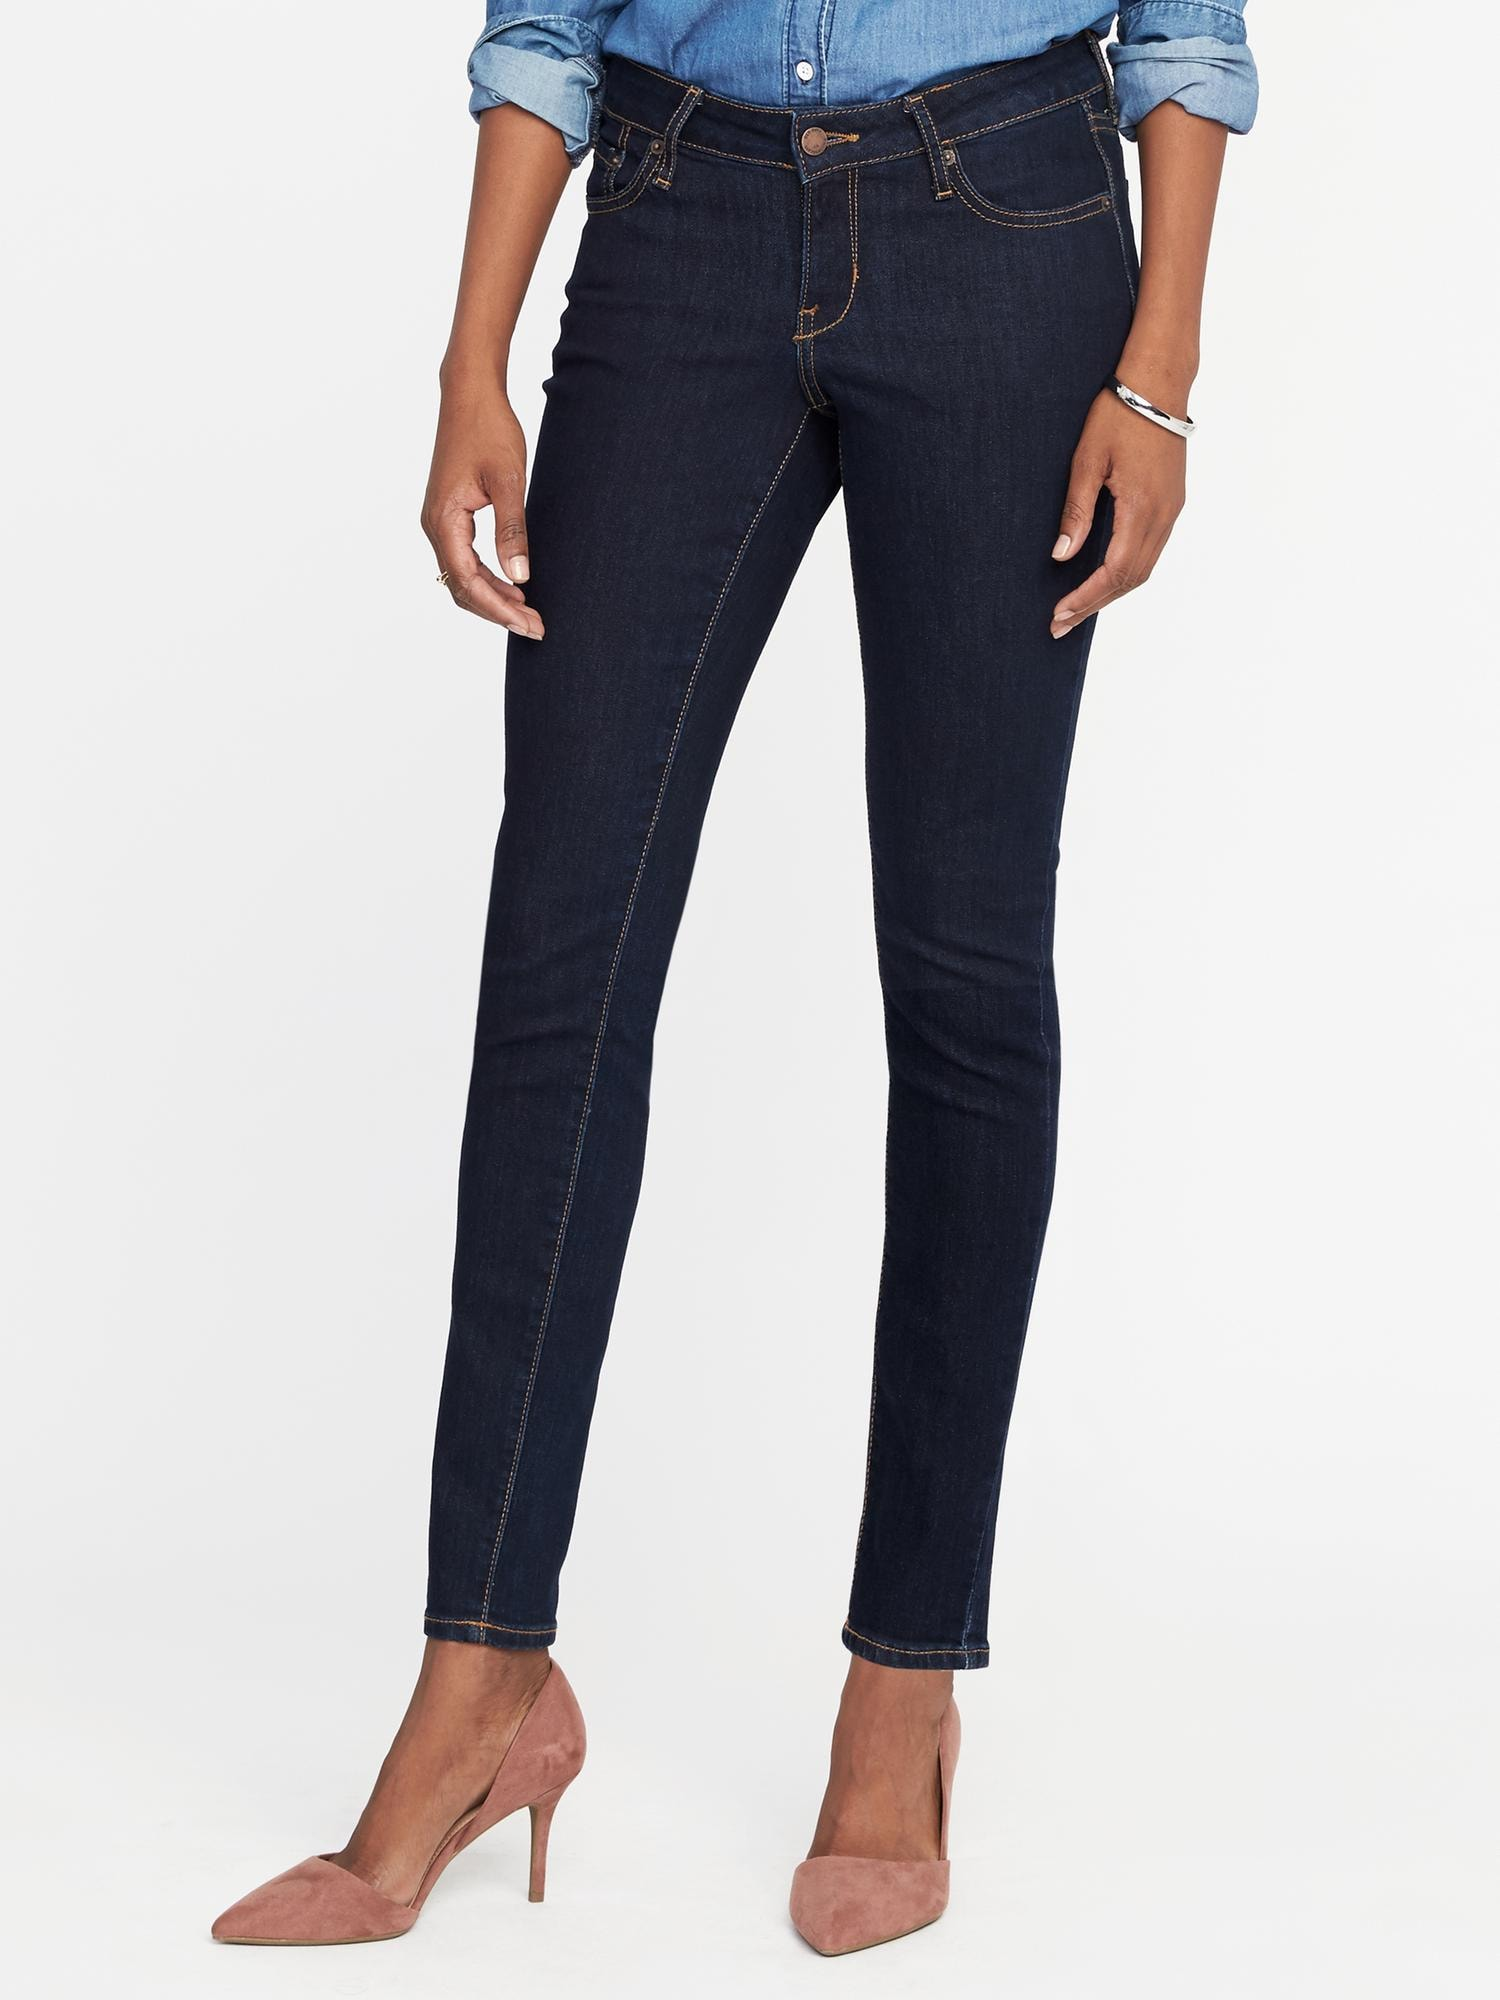 ab5bb185c34 Low-Rise Rockstar Super Skinny Jeans for Women | Old Navy